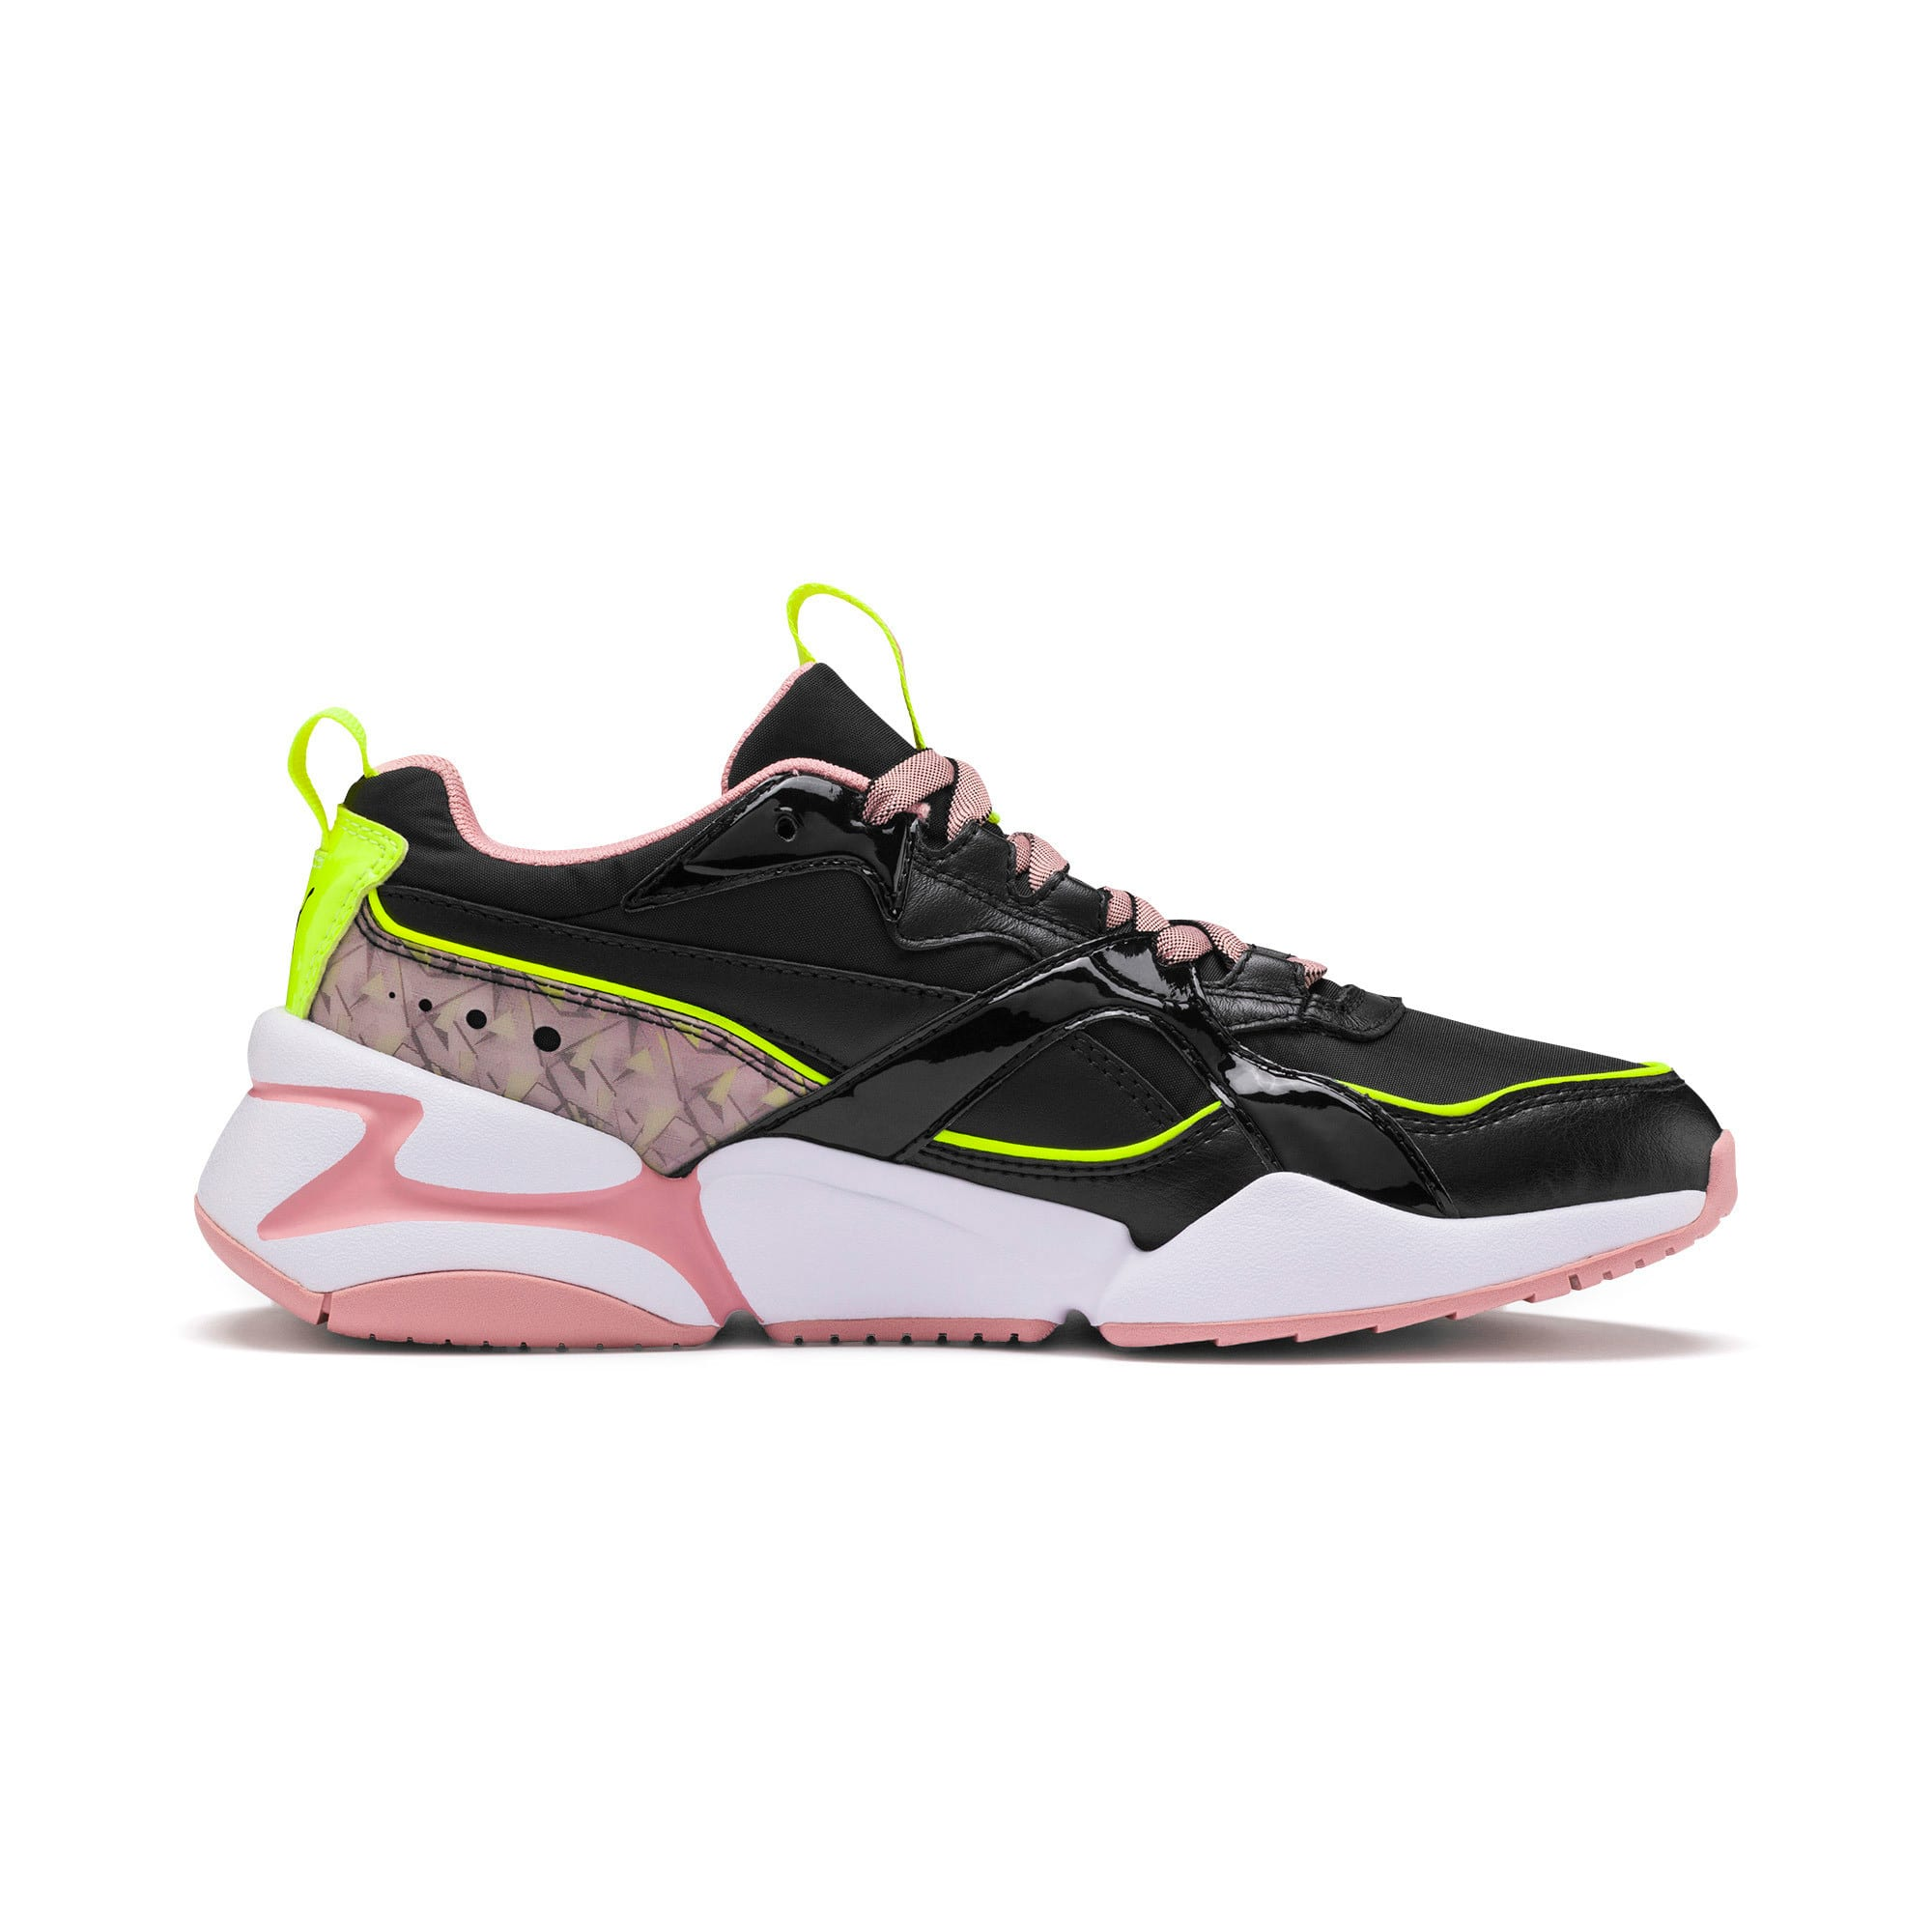 Thumbnail 6 of Nova 2 Shift Women's Trainers, Puma Black-Bridal Rose, medium